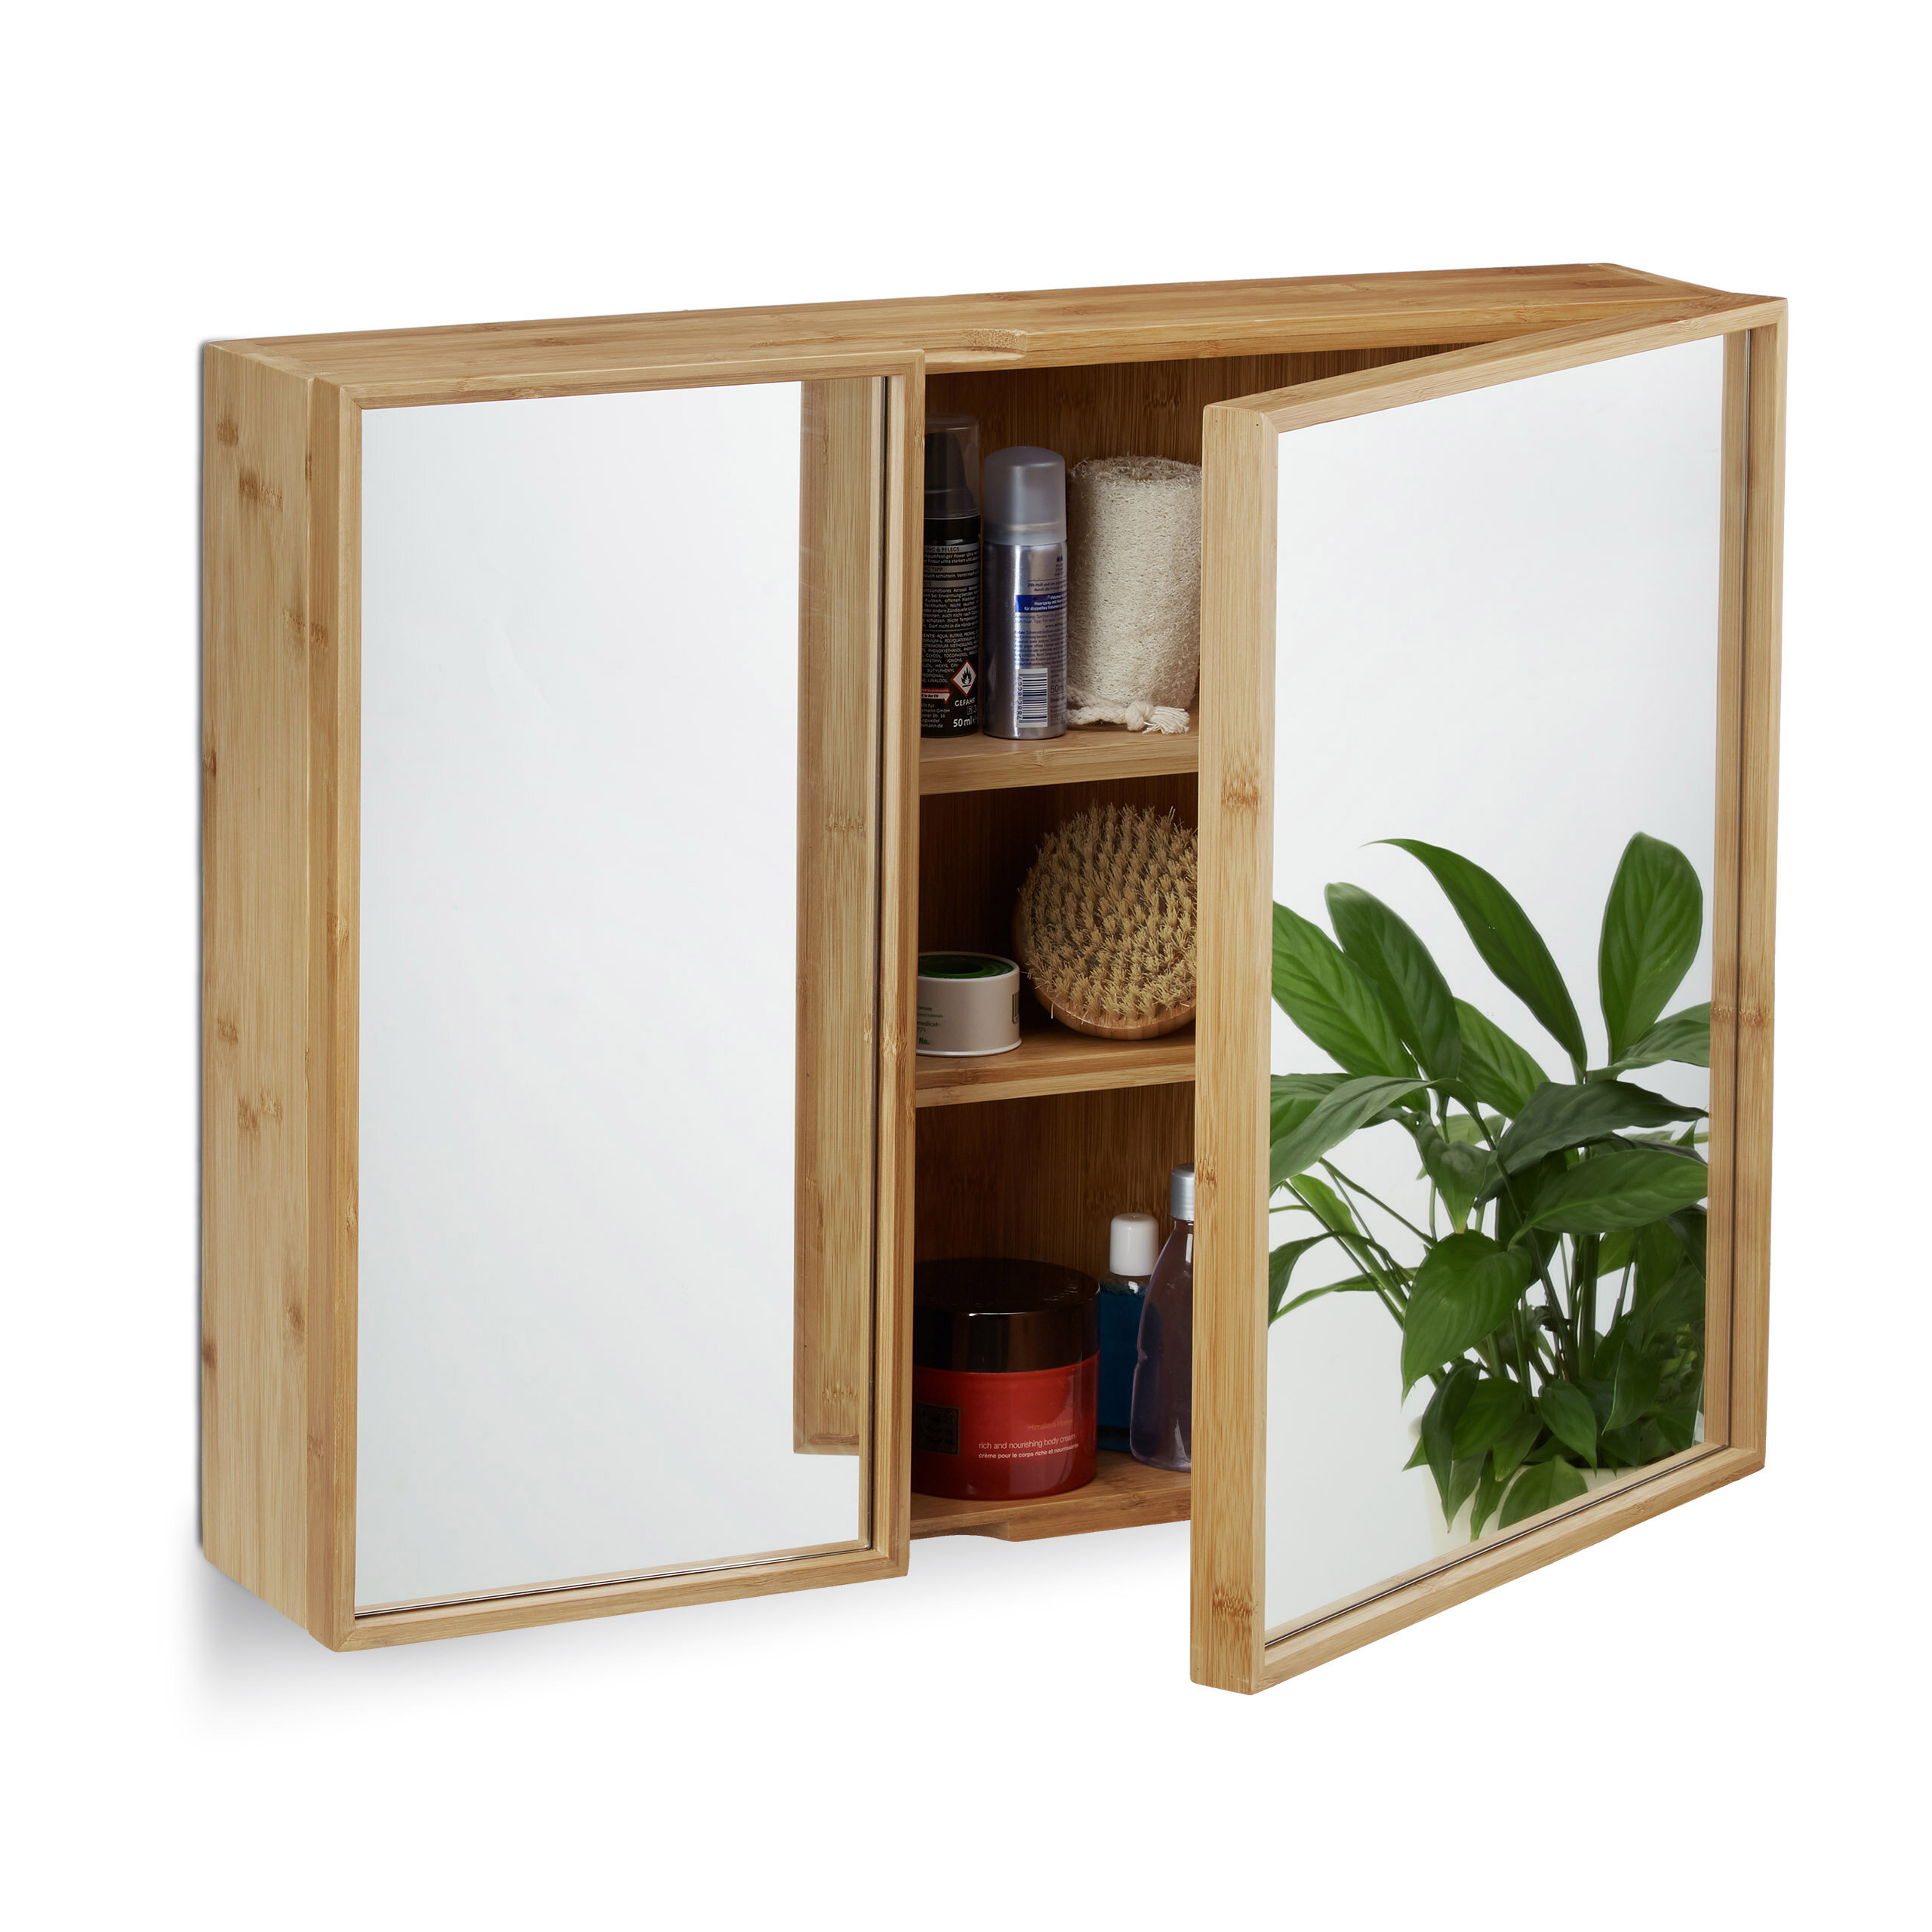 Hotaling 60 X 51cm Mirror Wall Mounted Cabinet